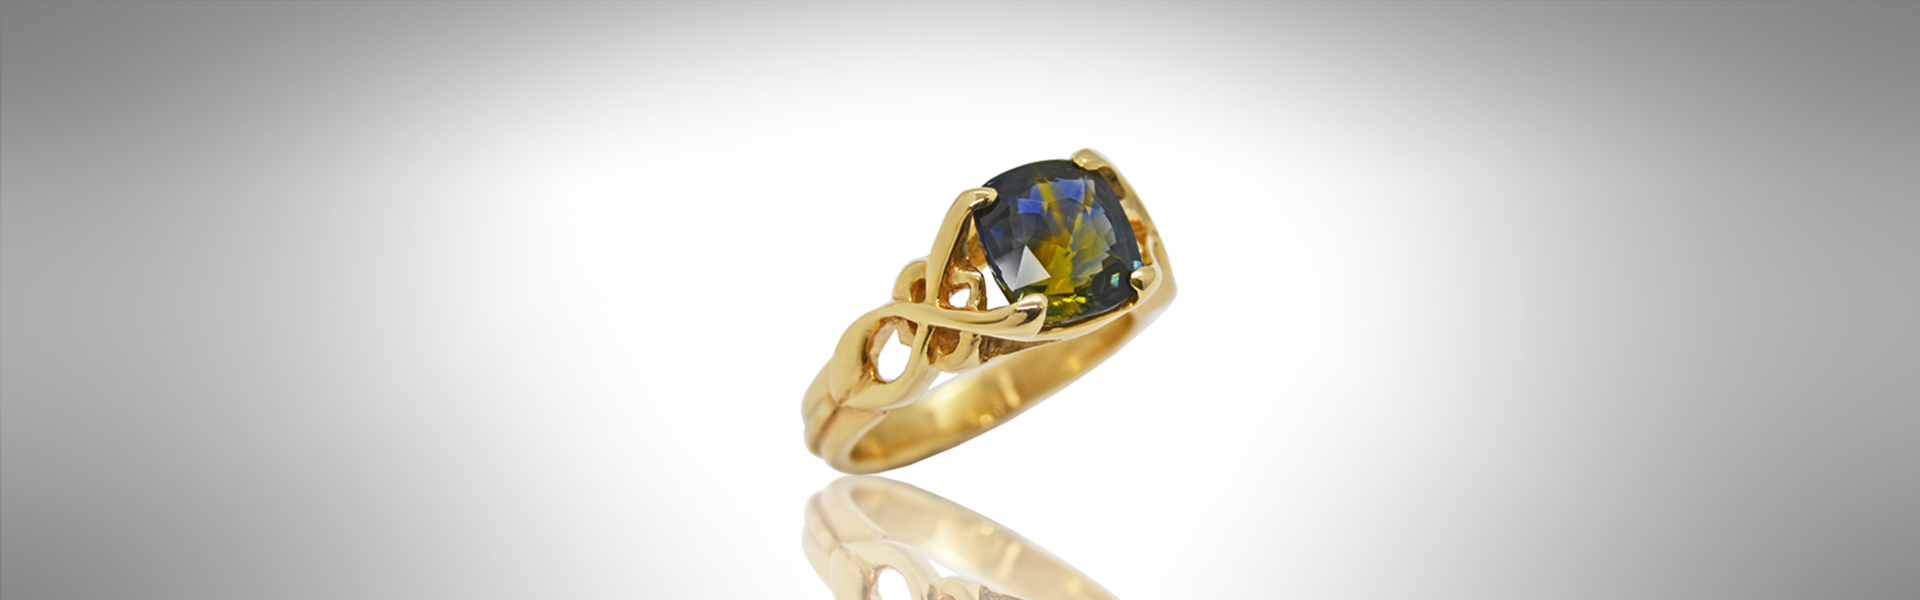 bicolor yellow and blue natural sapphire in 18kt yellow gold with diamonds in an intricate open ring design.